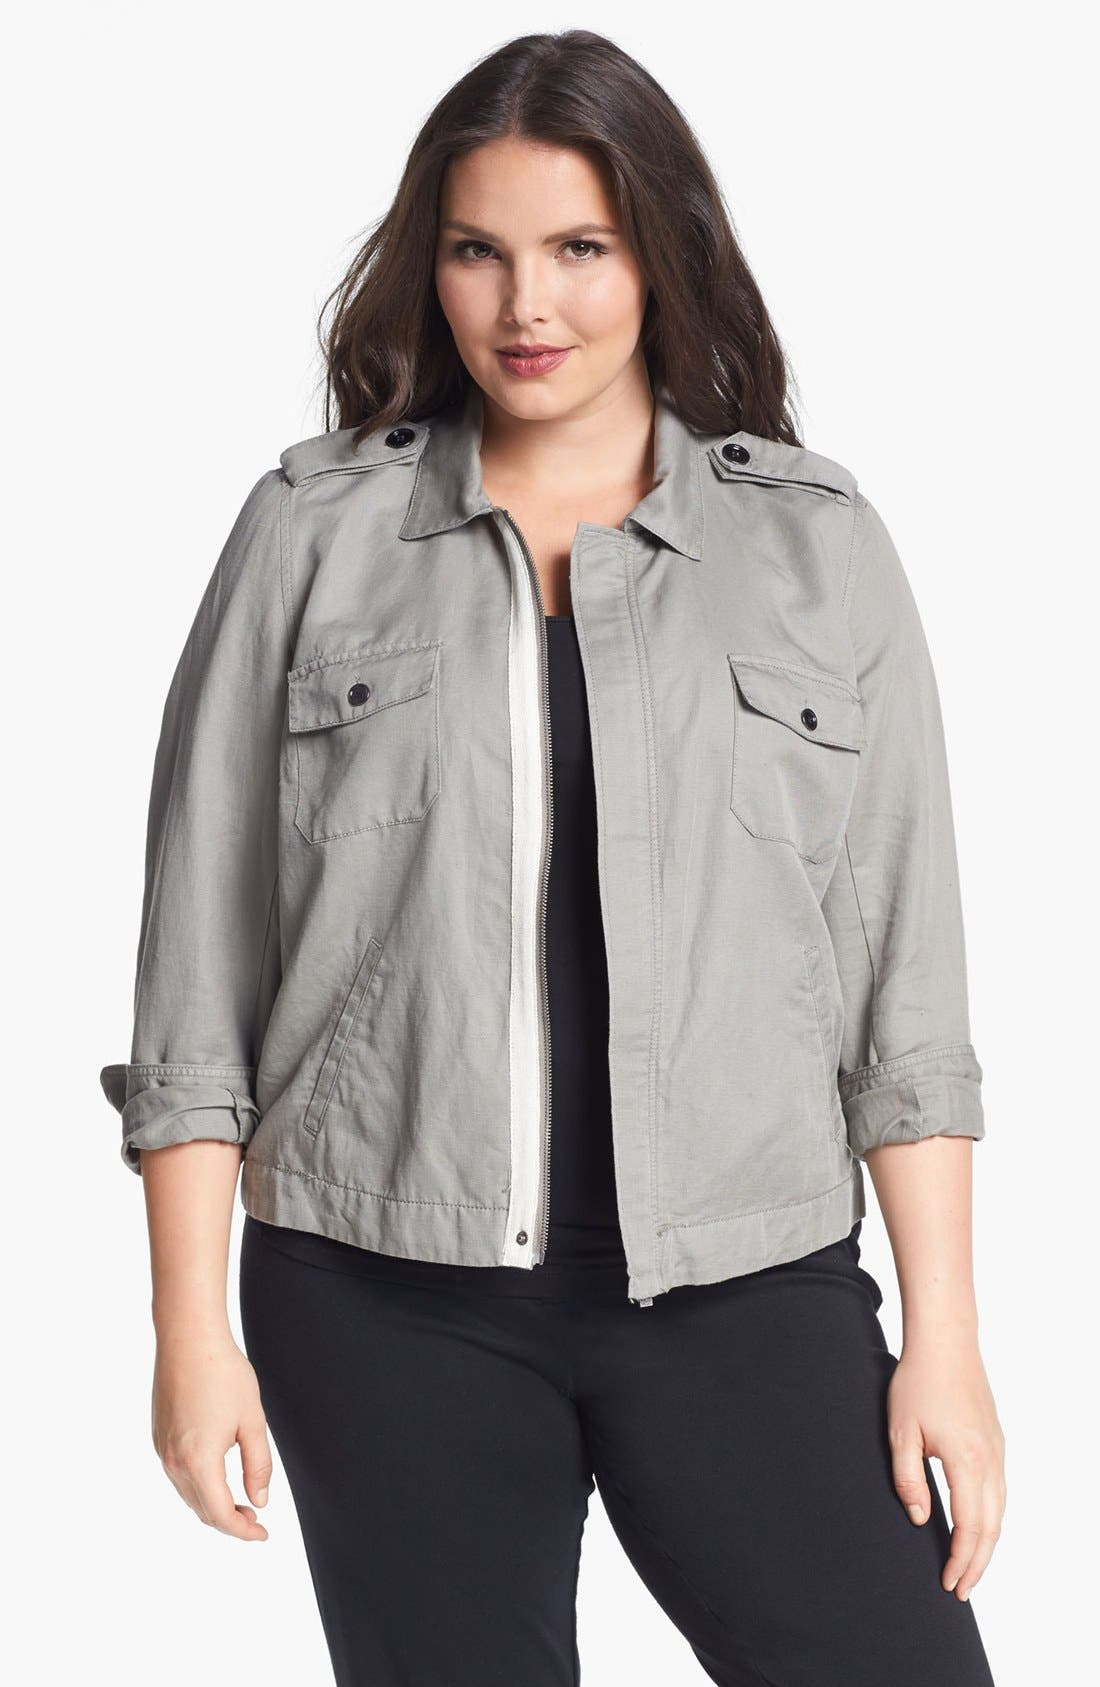 Alternate Image 1 Selected - Two by Vince Camuto Utility Jacket (Plus Size)